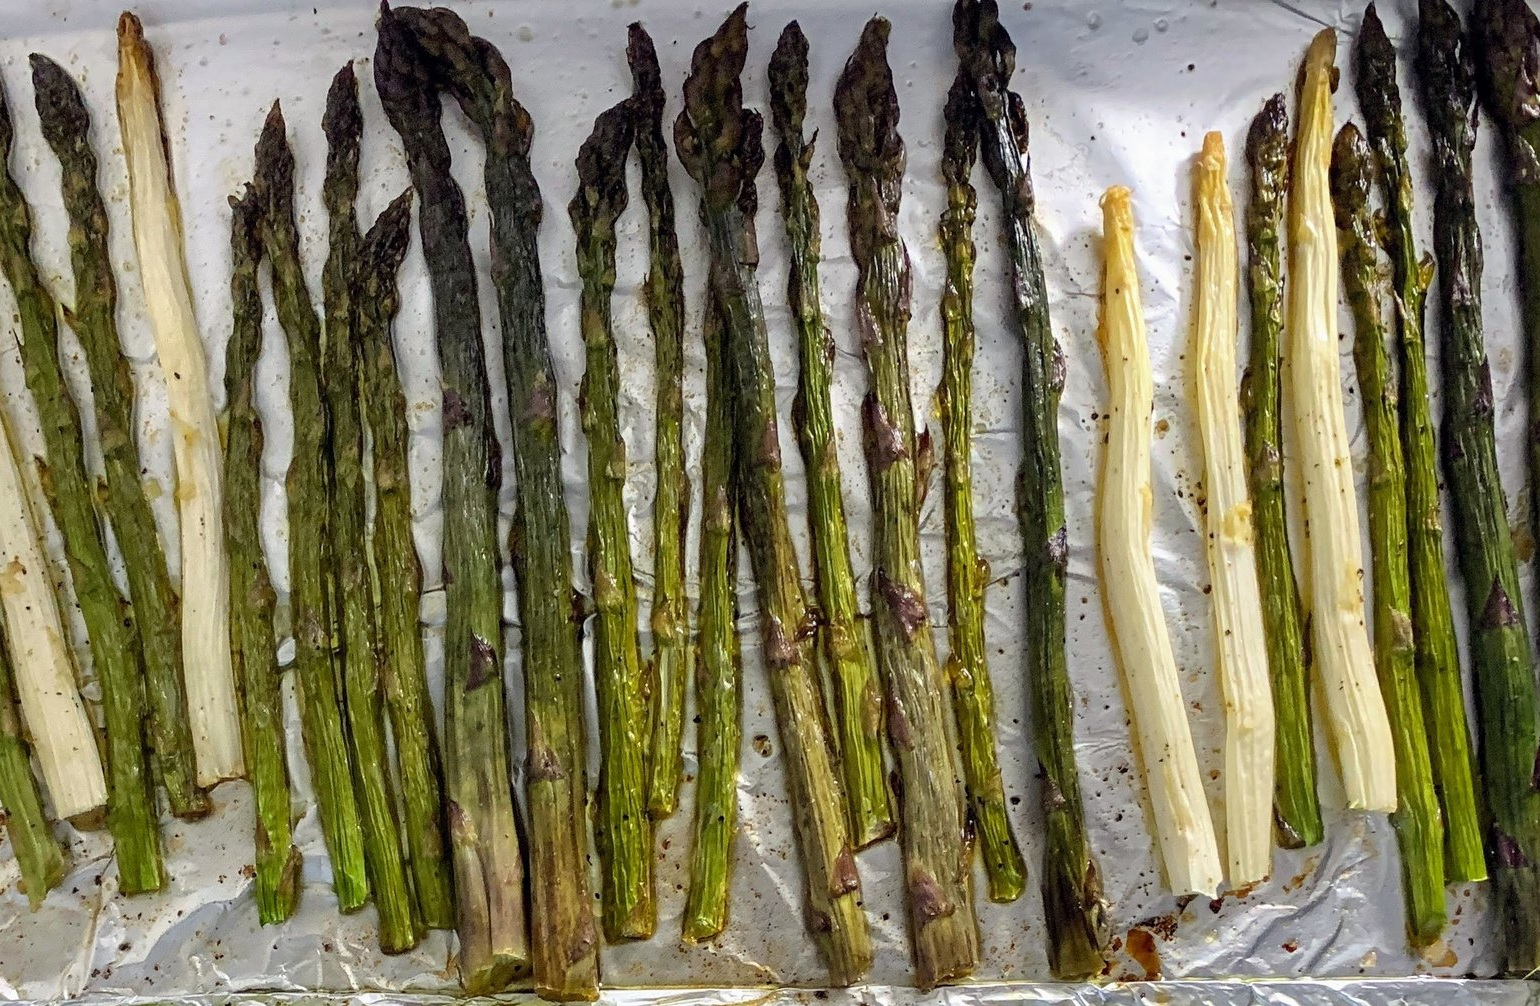 Grilled asparagus - olive oil, salt and pepper, and a 350 F oven is all that is needed for a deliciously grilled asparagus.